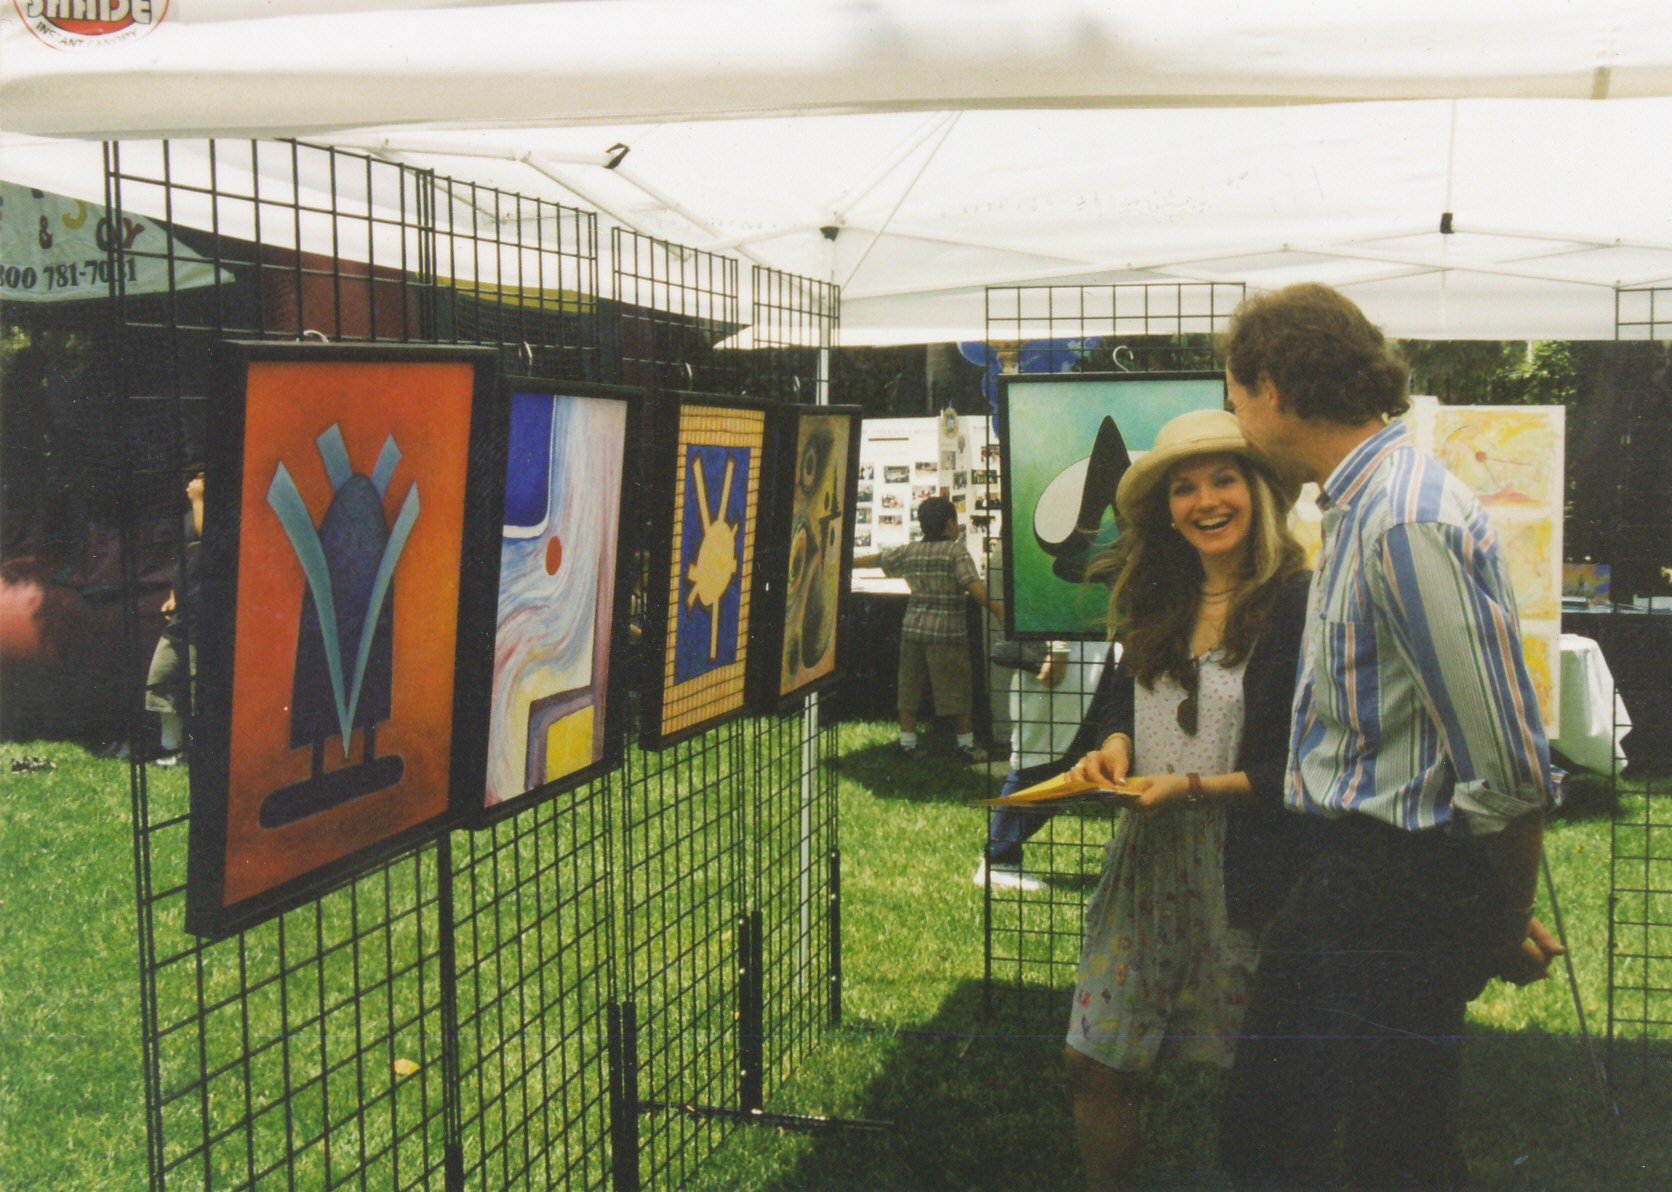 David W. Douthat booth at art festival 1996